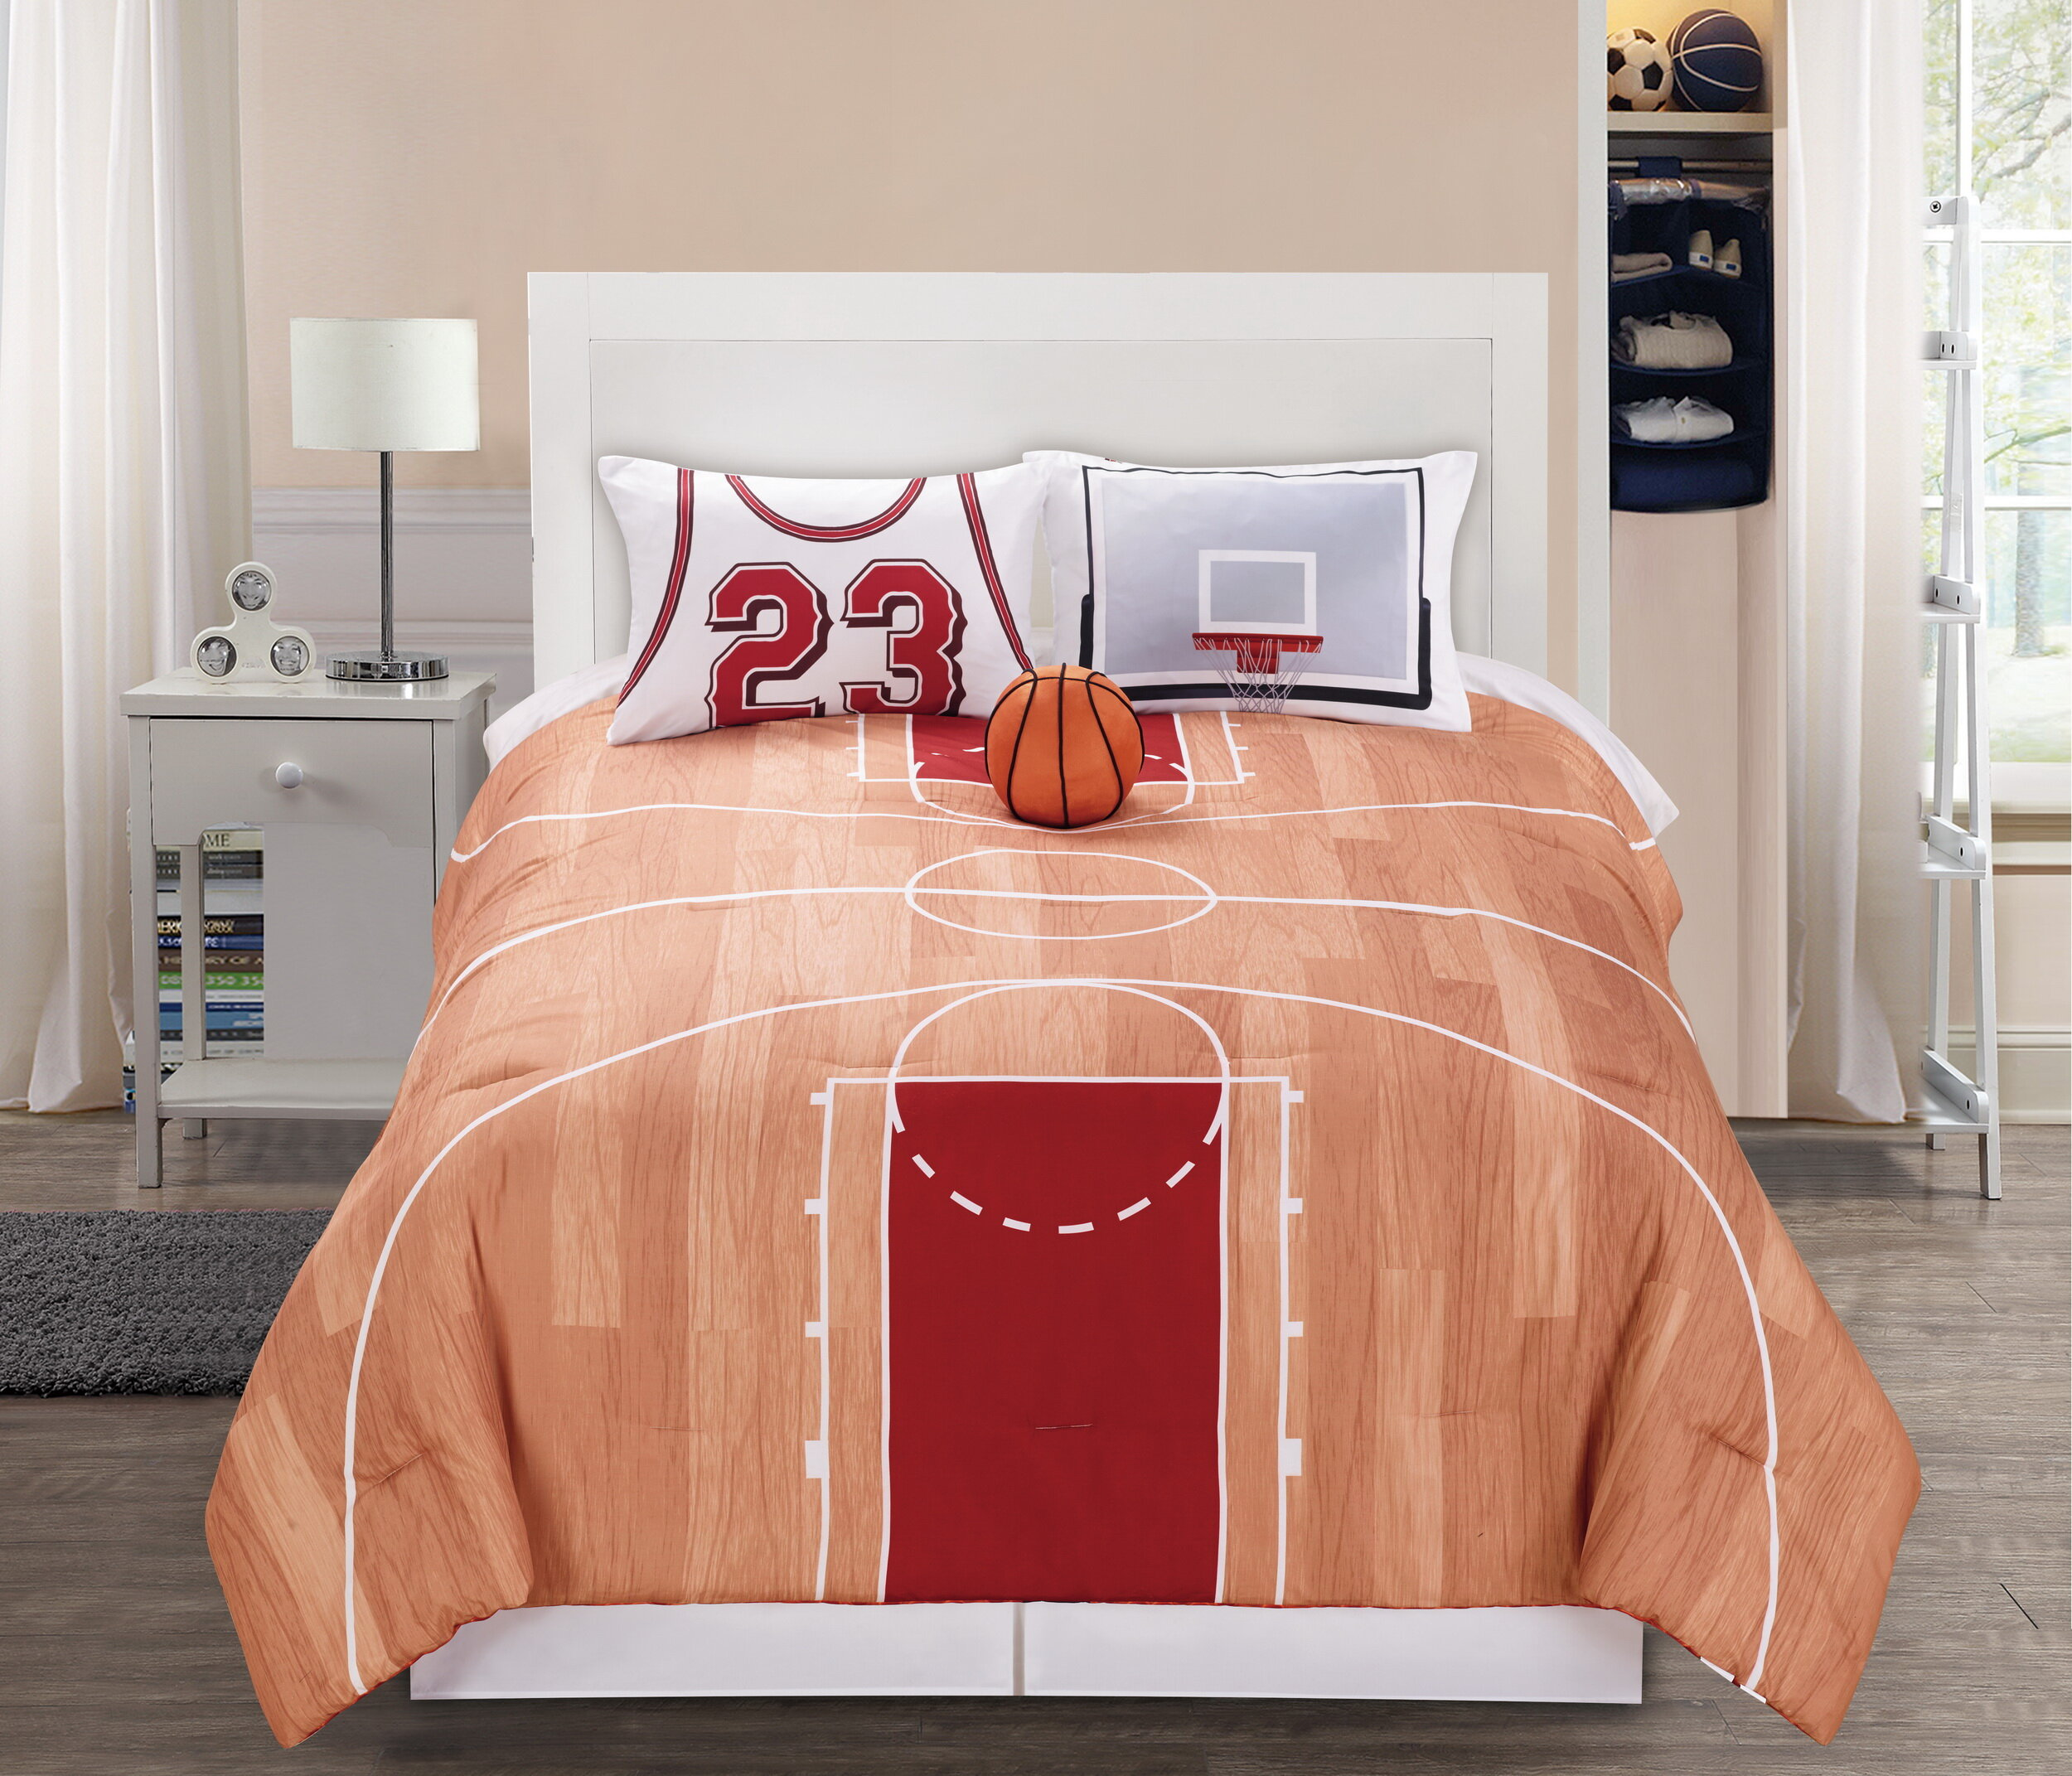 Isabelle Max Blue Ivy B Ball Comforter Set Wayfair